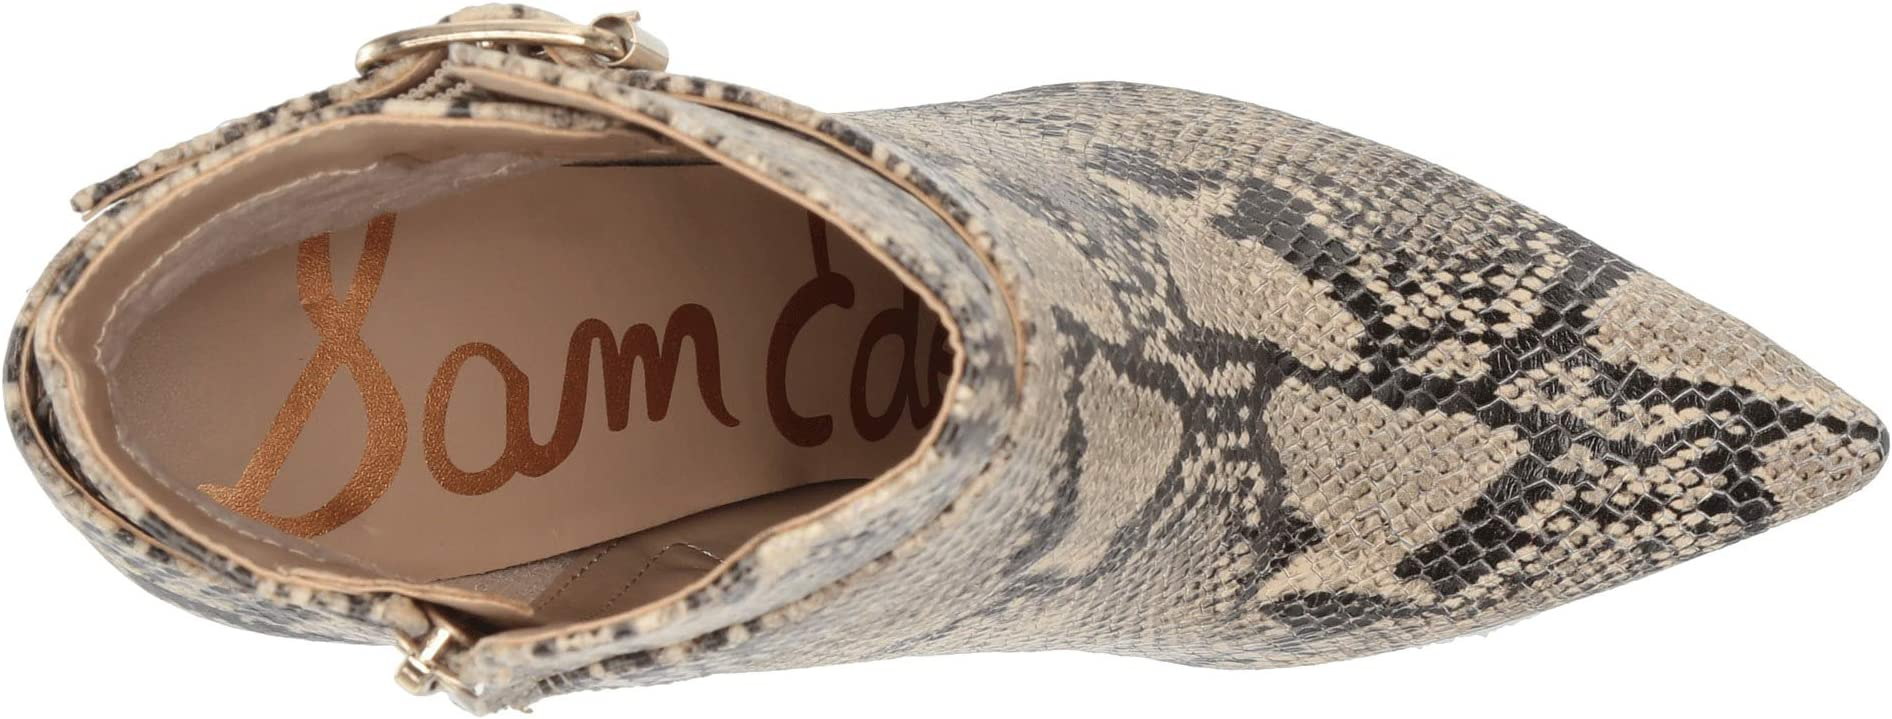 Sam Edelman Rita | Women's shoes | 2020 Newest